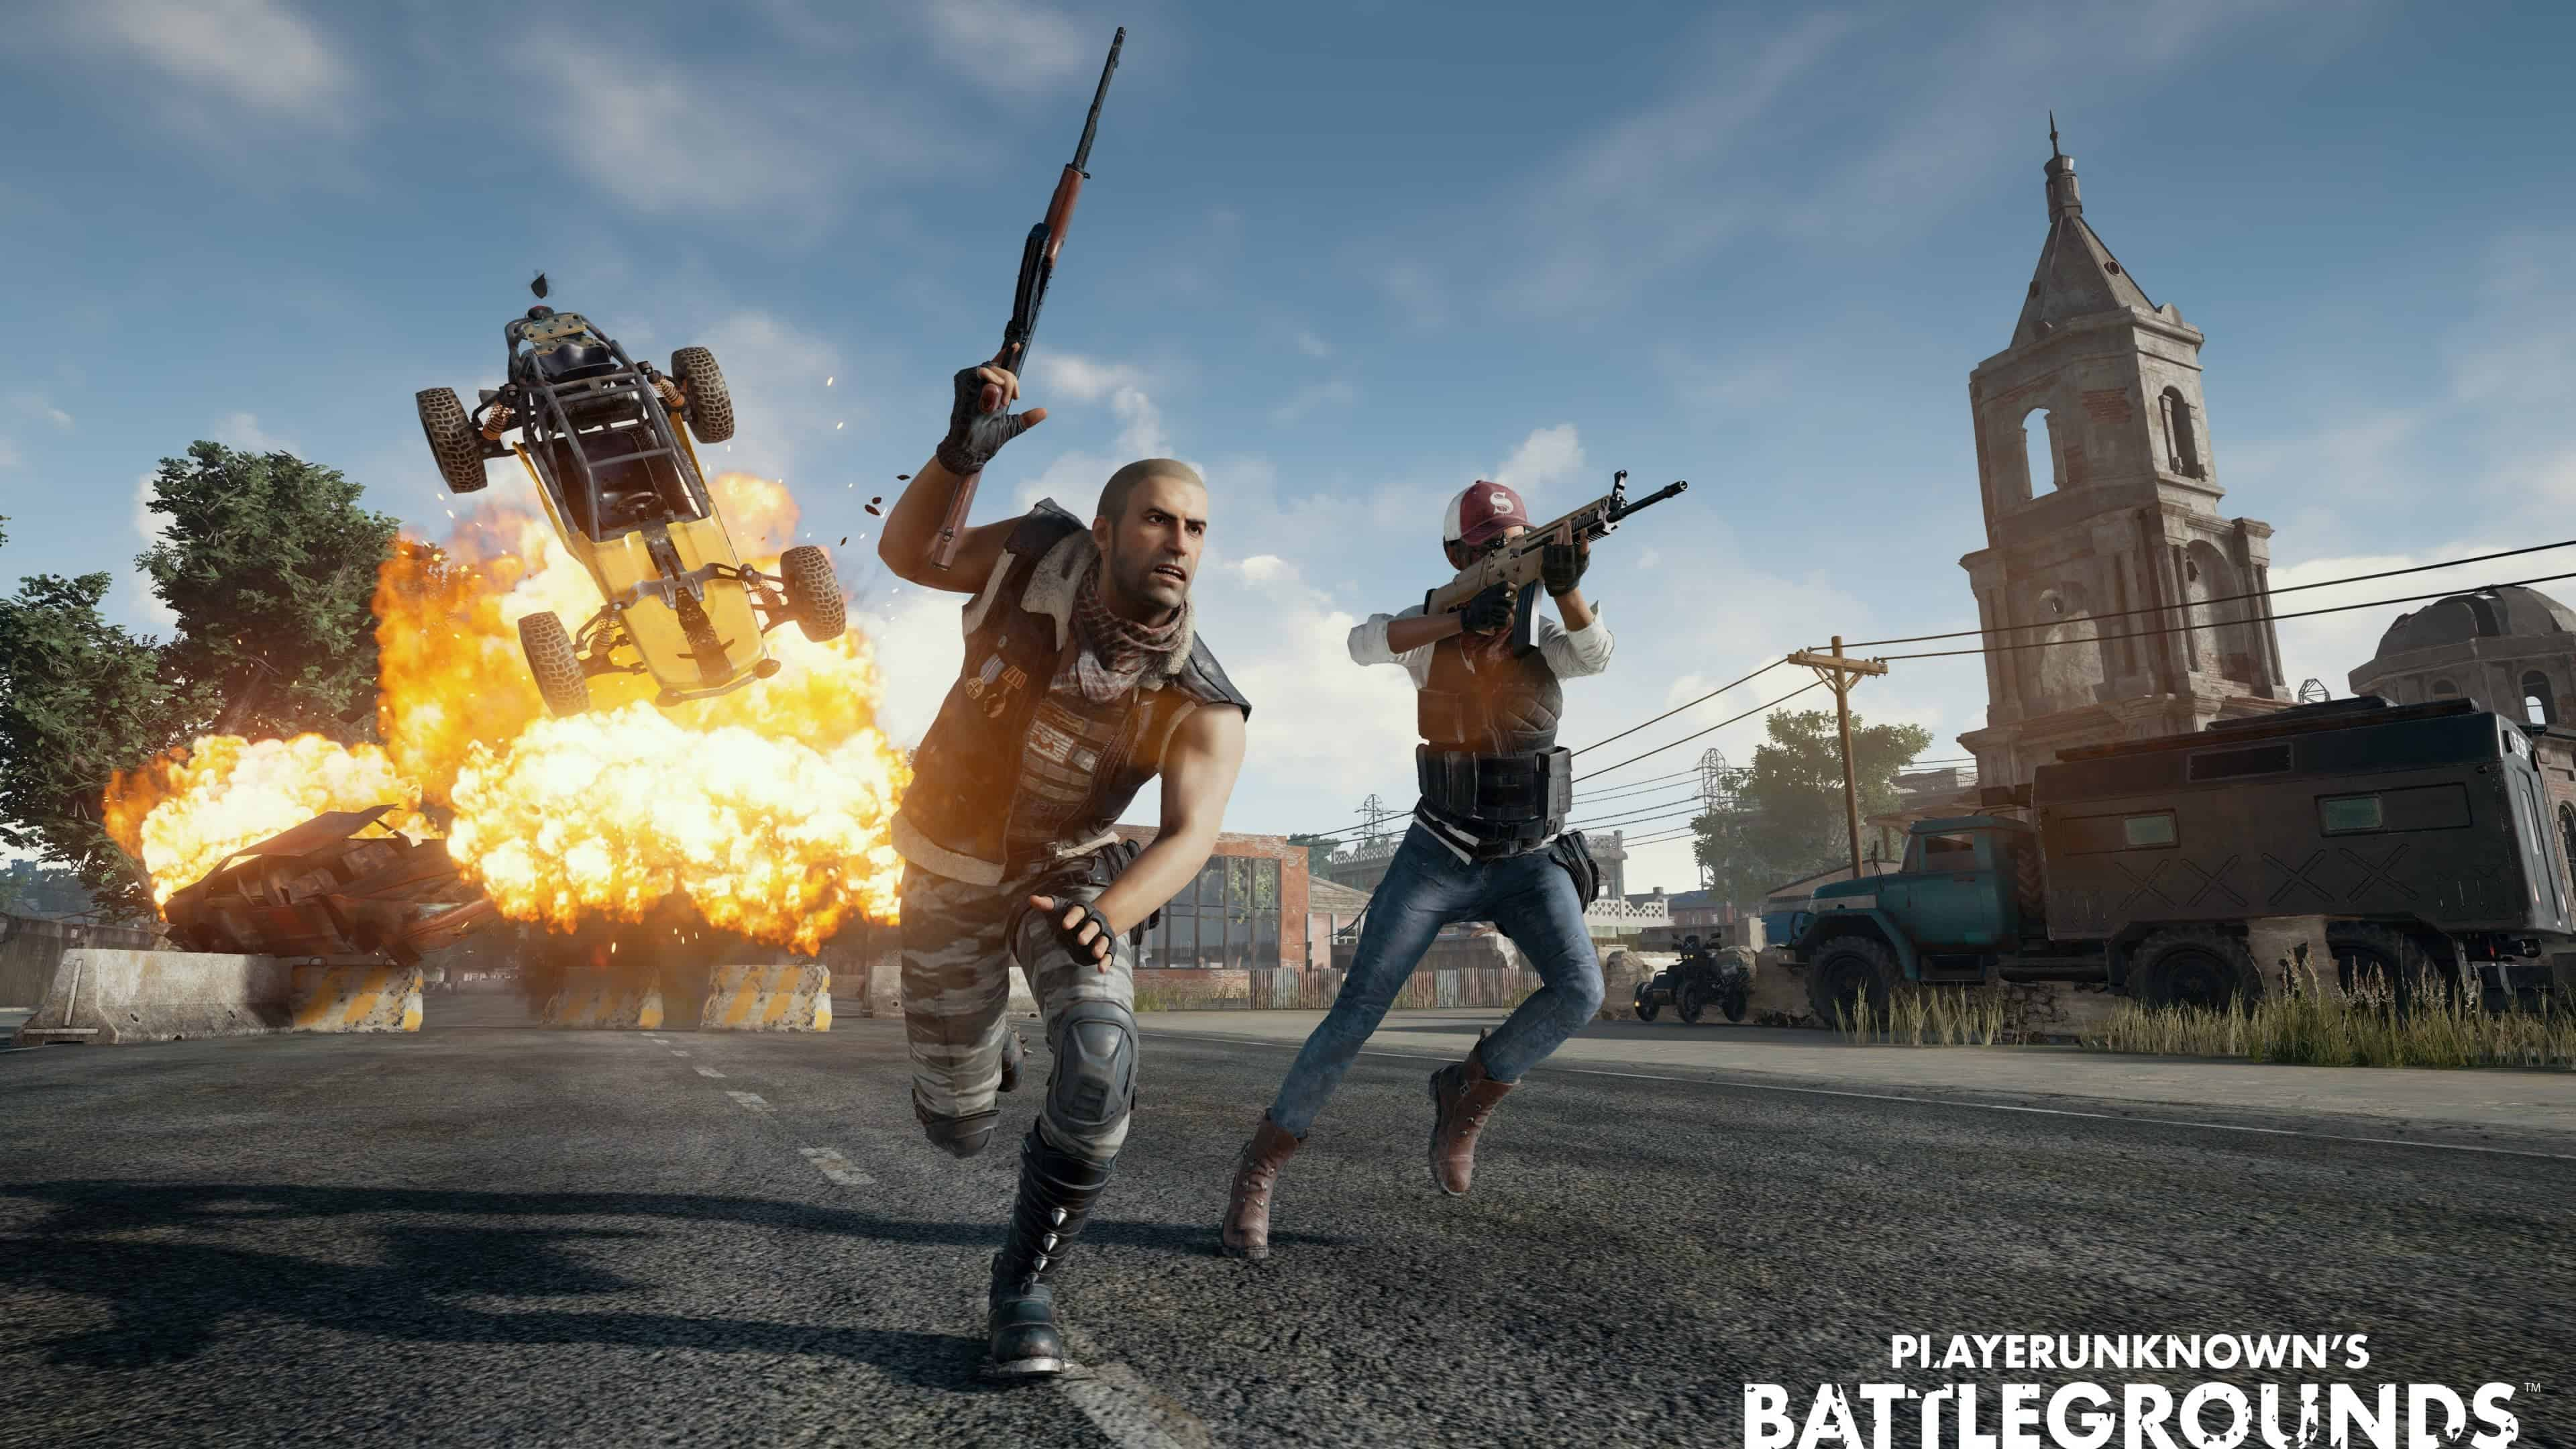 Pubg Player Unknown Battlegrounds Artwork Uhd 4k Wallpaper Pixelz